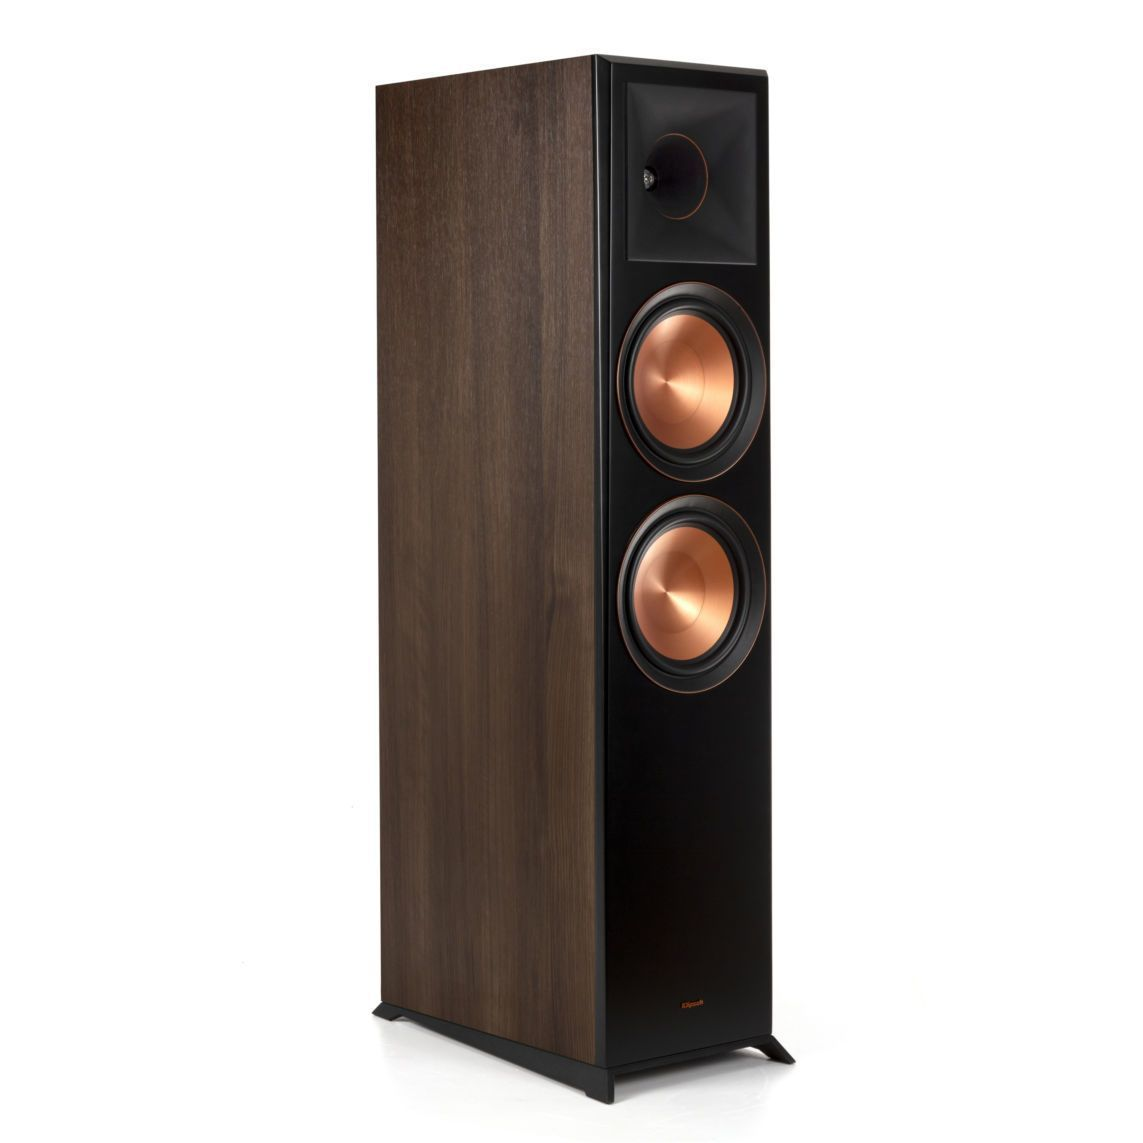 Klipsch Reference Premiere Rp 8000f Speakers Klipsch Klipsch Reference Klipsch Reference Premiere